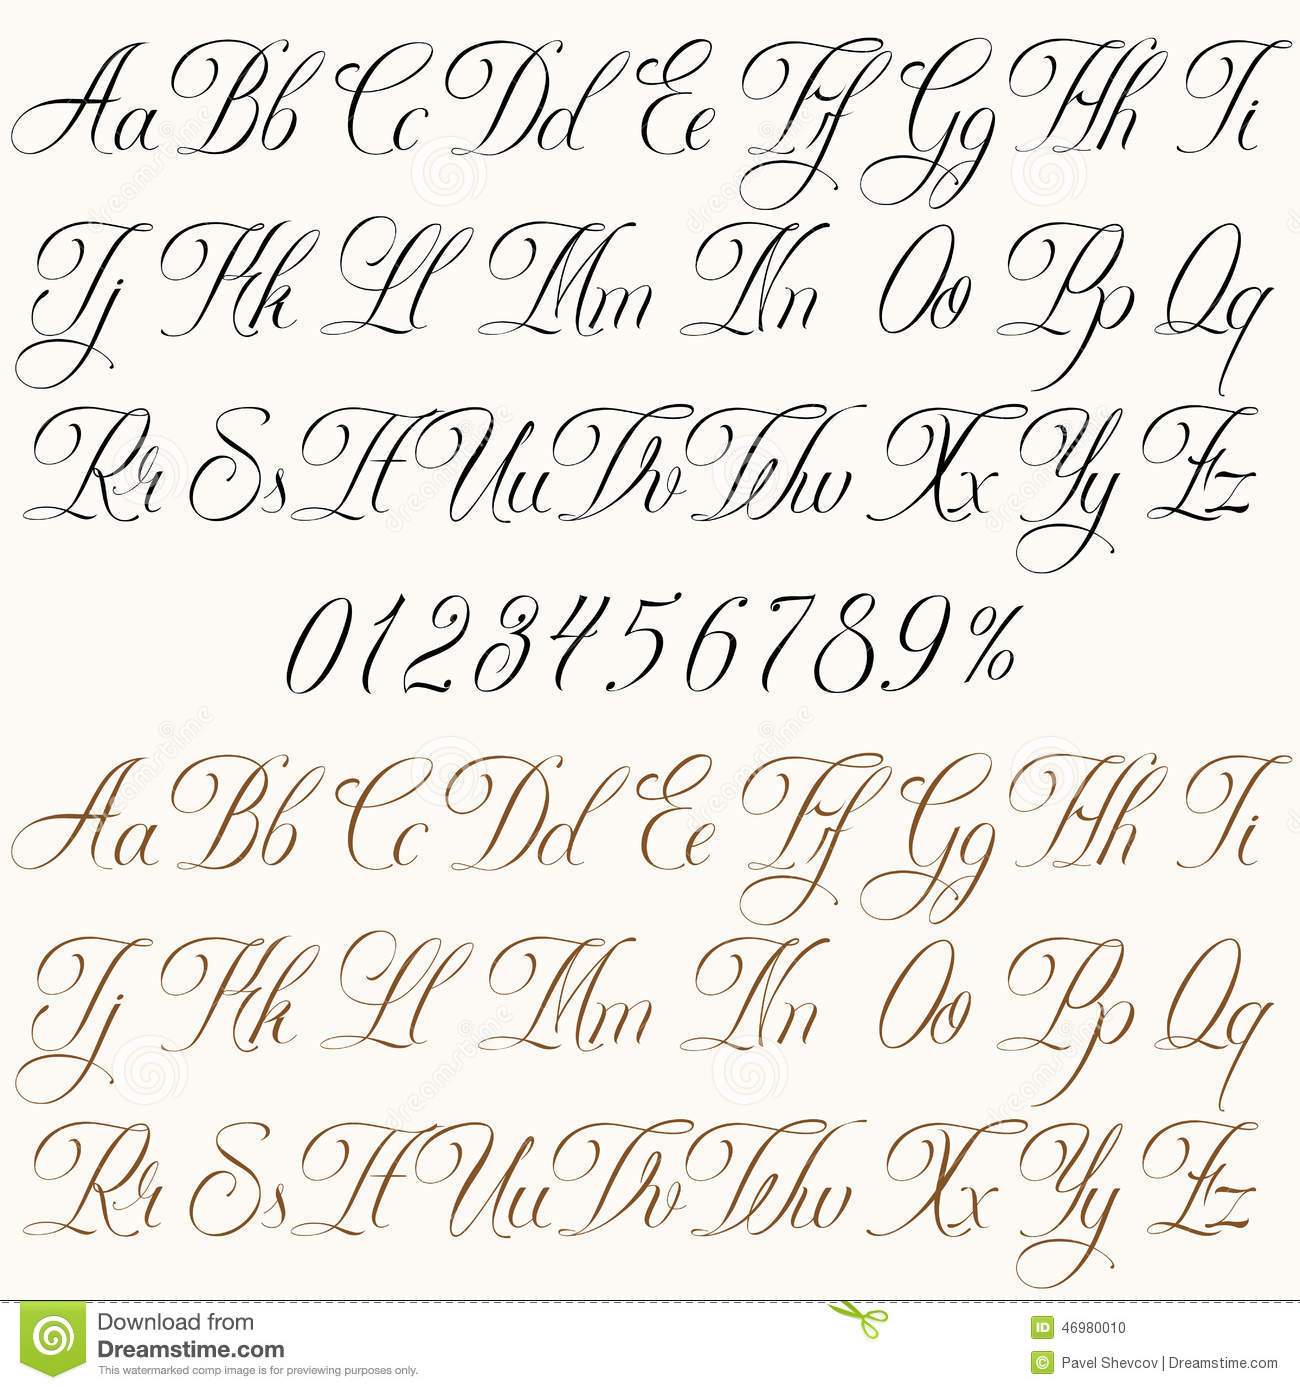 Handmade vector calligraphy tattoo alphabet with numbers.